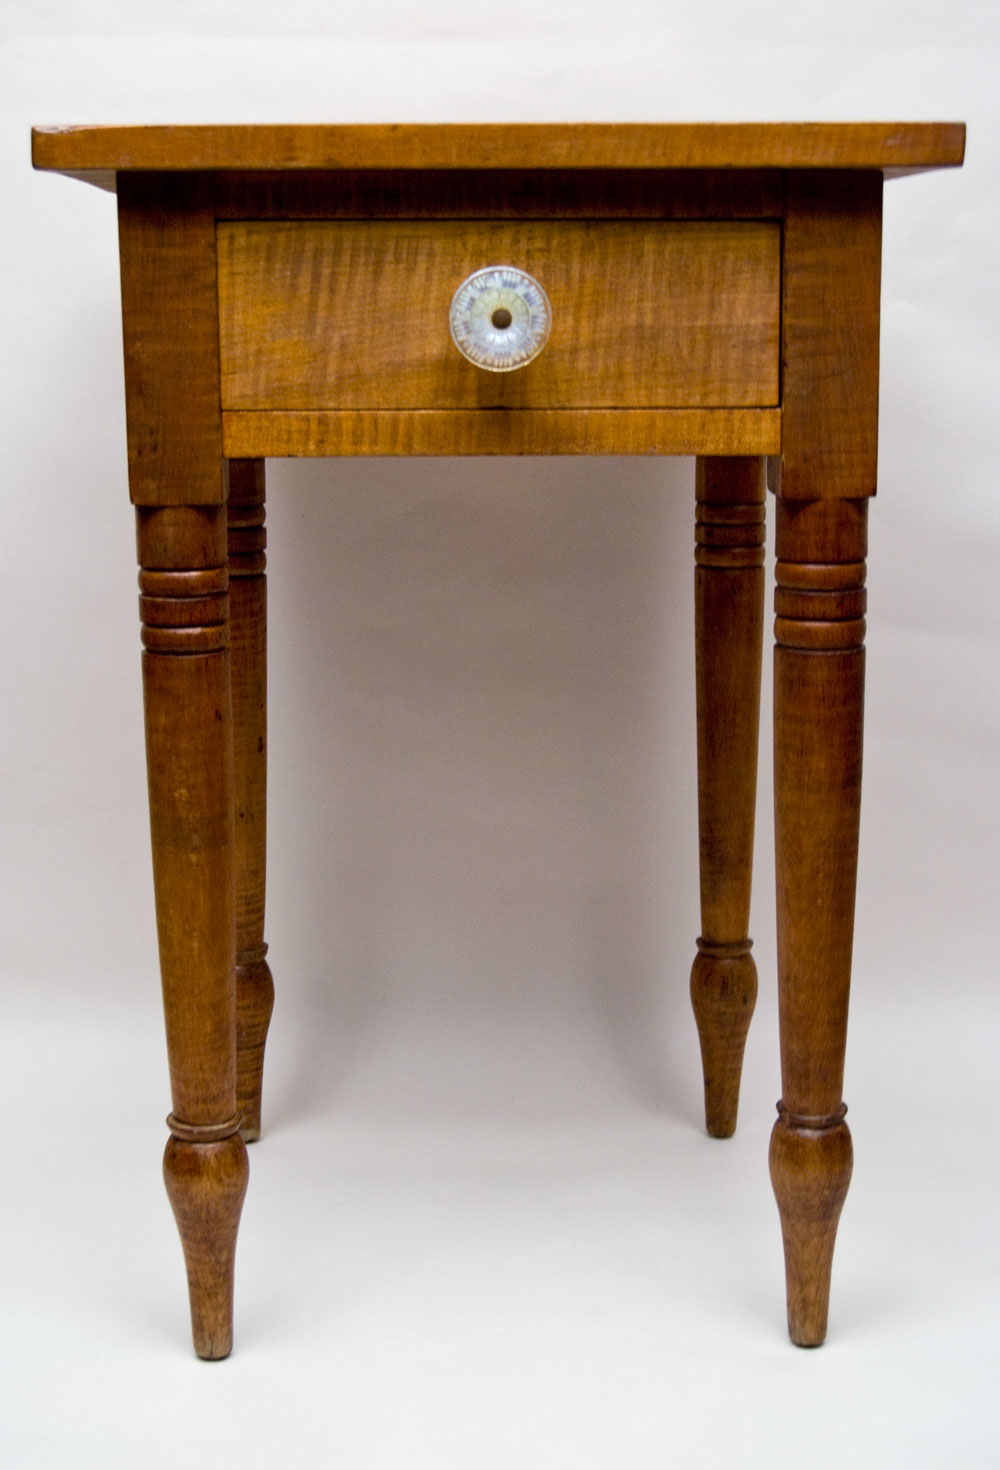 Antique American Tiger Maple Work Table One Drawer Stand Turned Legs - 19th Century Antique Early American Tiger Maple One Drawer Stand